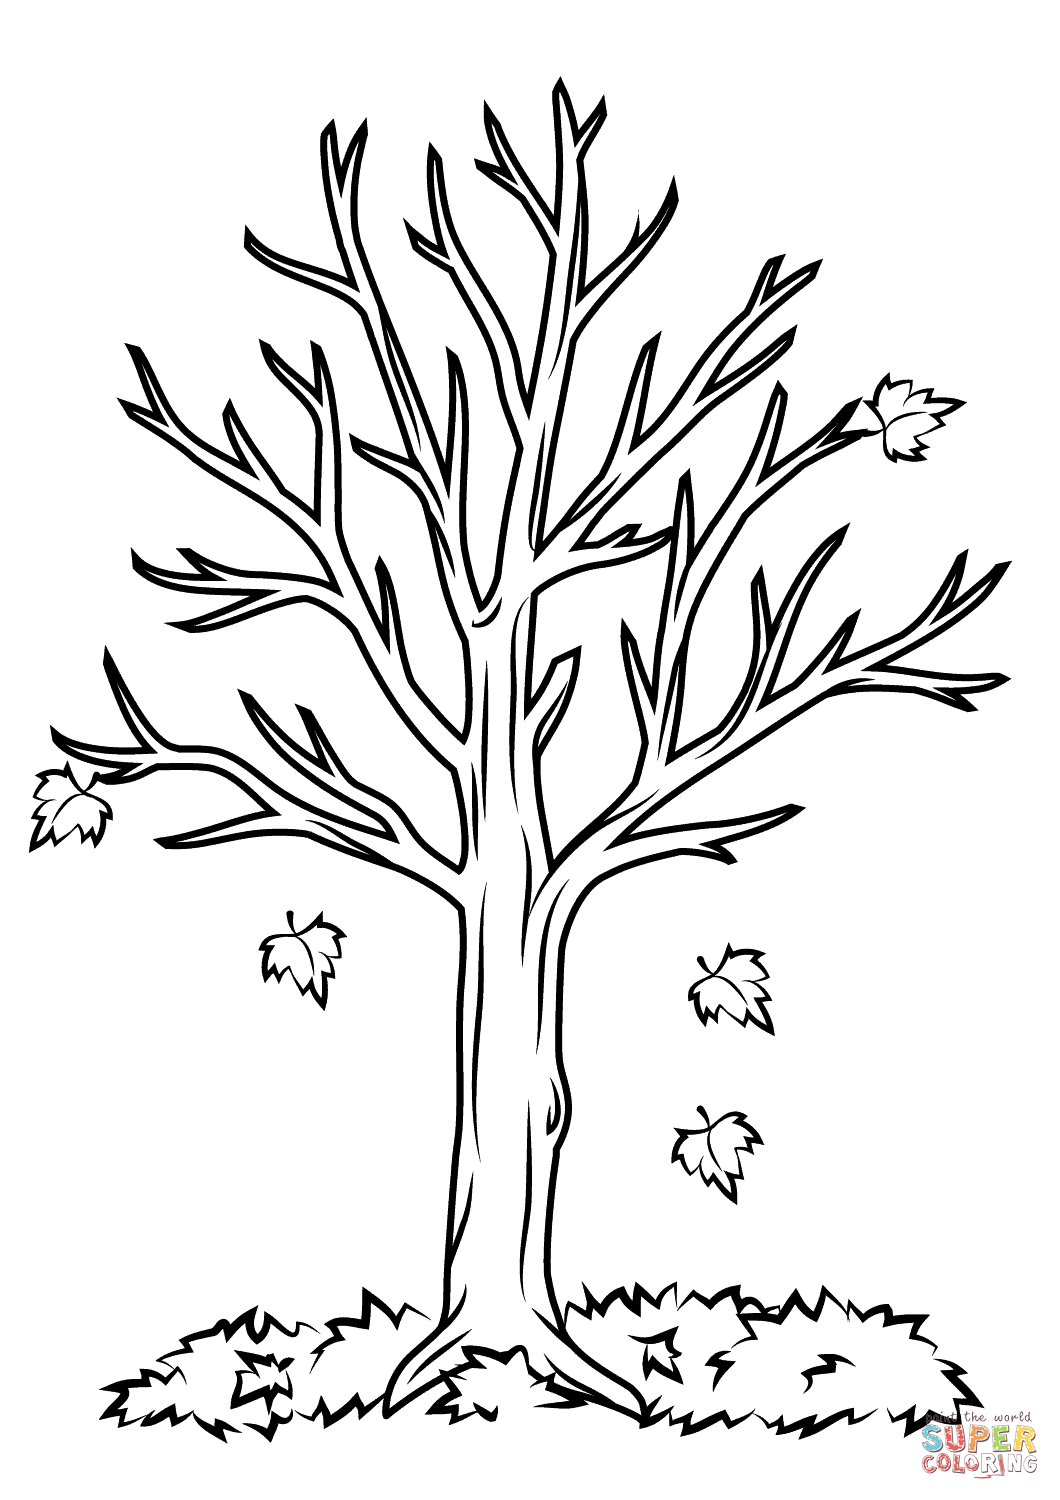 Fall Tree Coloring Page | Free Printable Coloring Pages - Tree Coloring Pages Free Printable